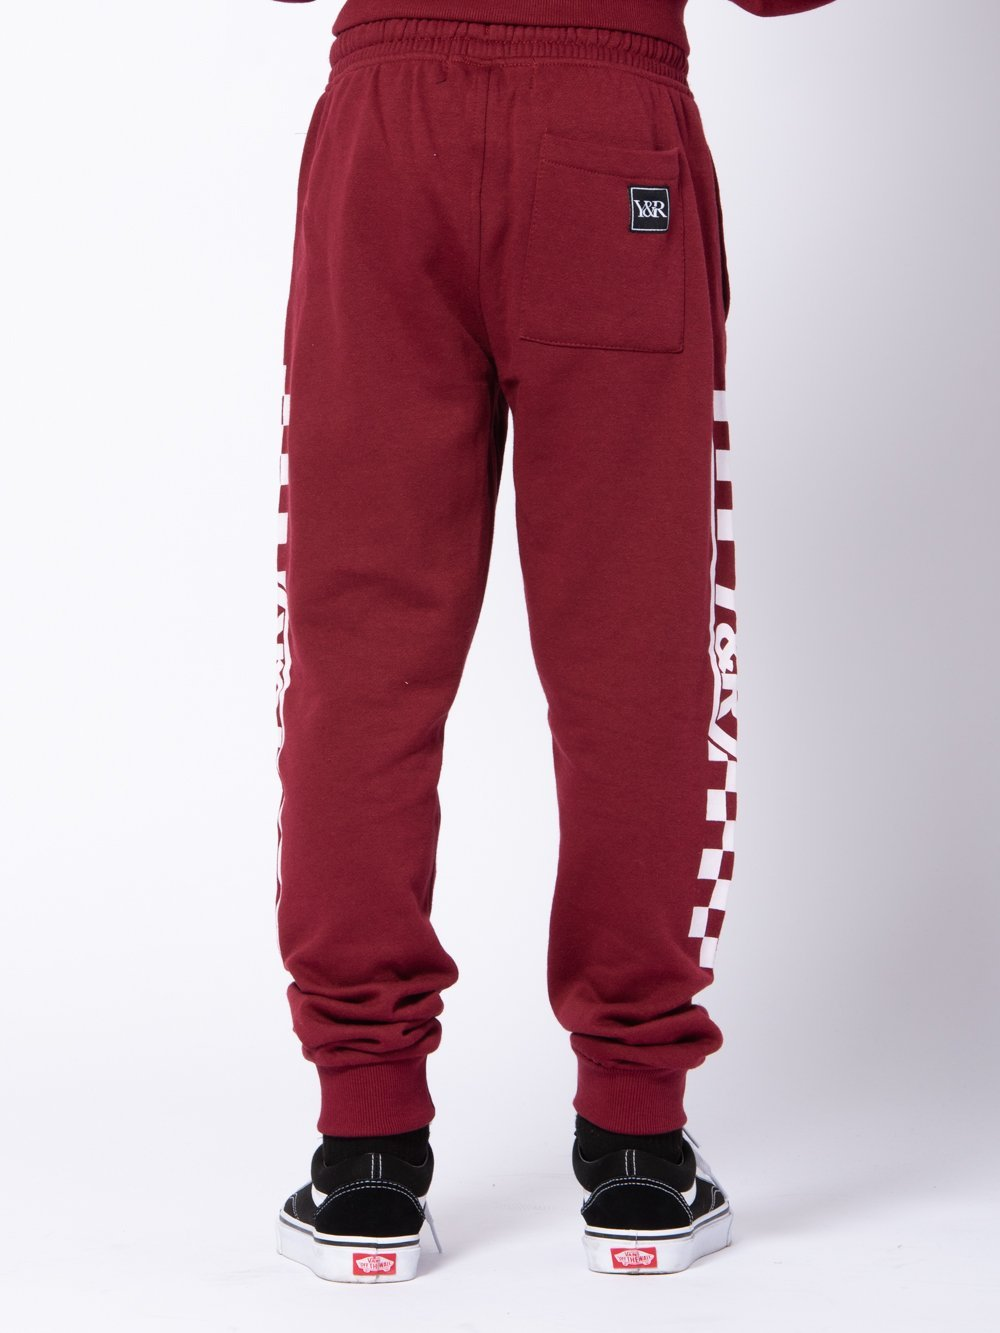 Young and Reckless Boys Youth - Bottoms - Sweatpants Youth Excursion Sweatpants - Burgundy